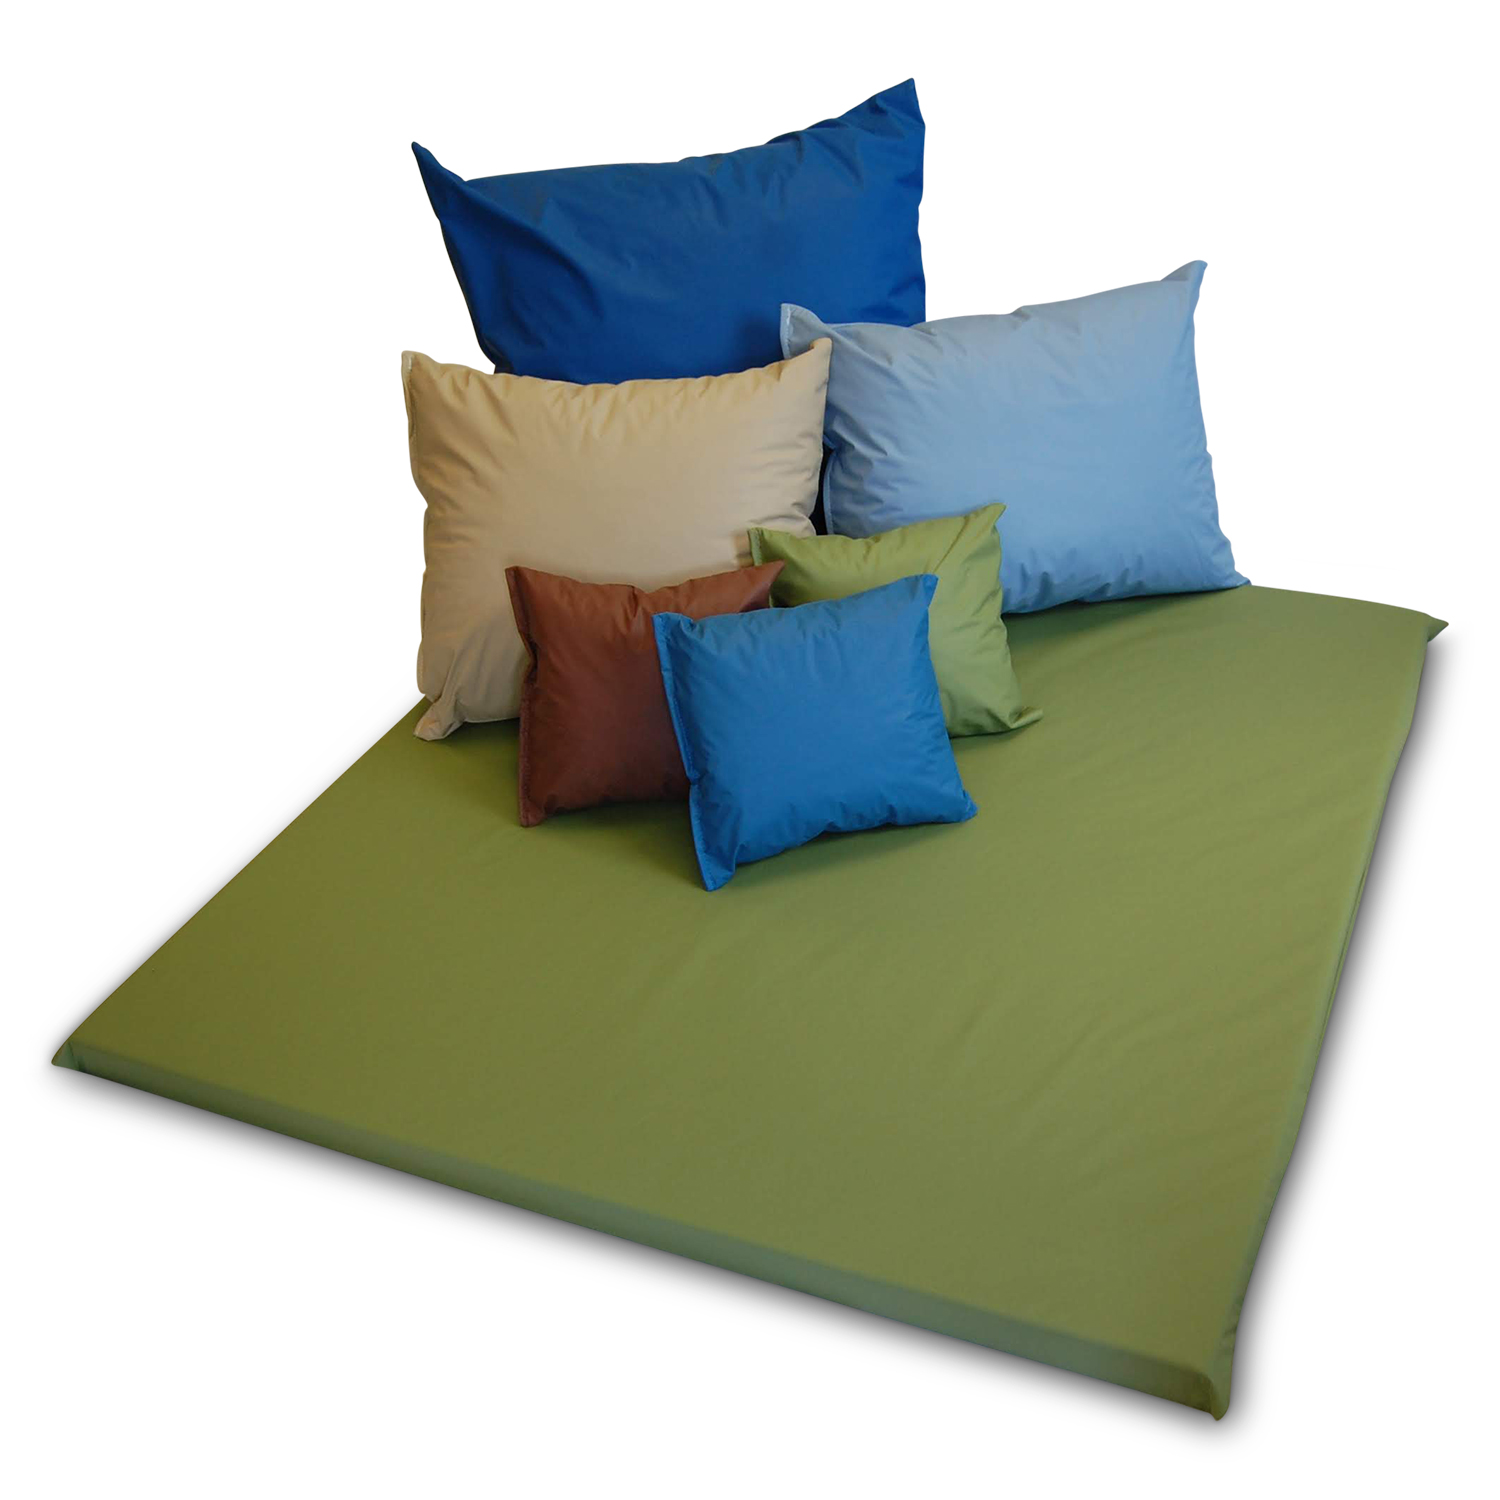 Pillows and Play Mats